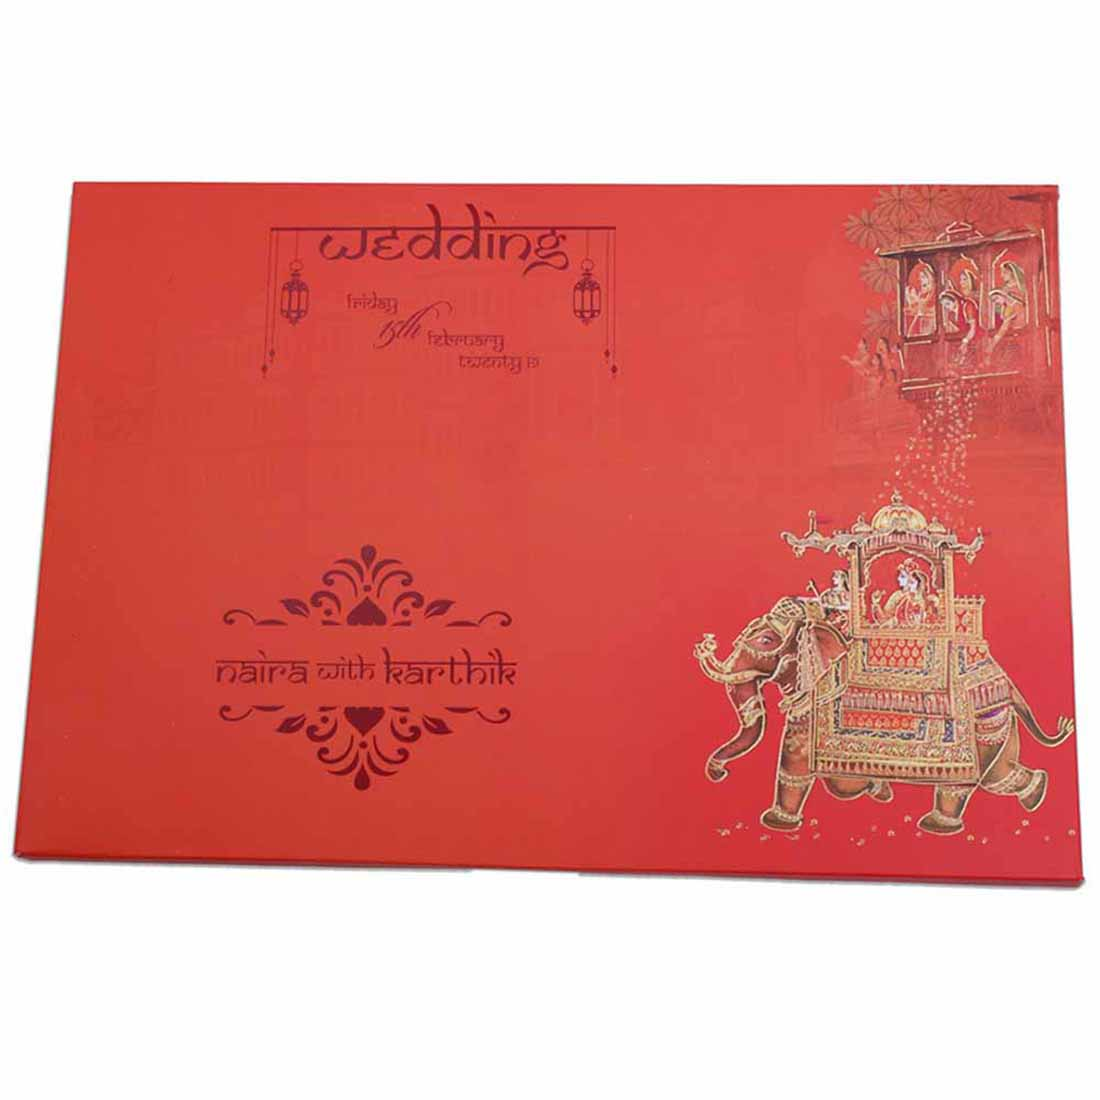 Royal Indian Invitation card with images of wedding ceremonies - Click Image to Close